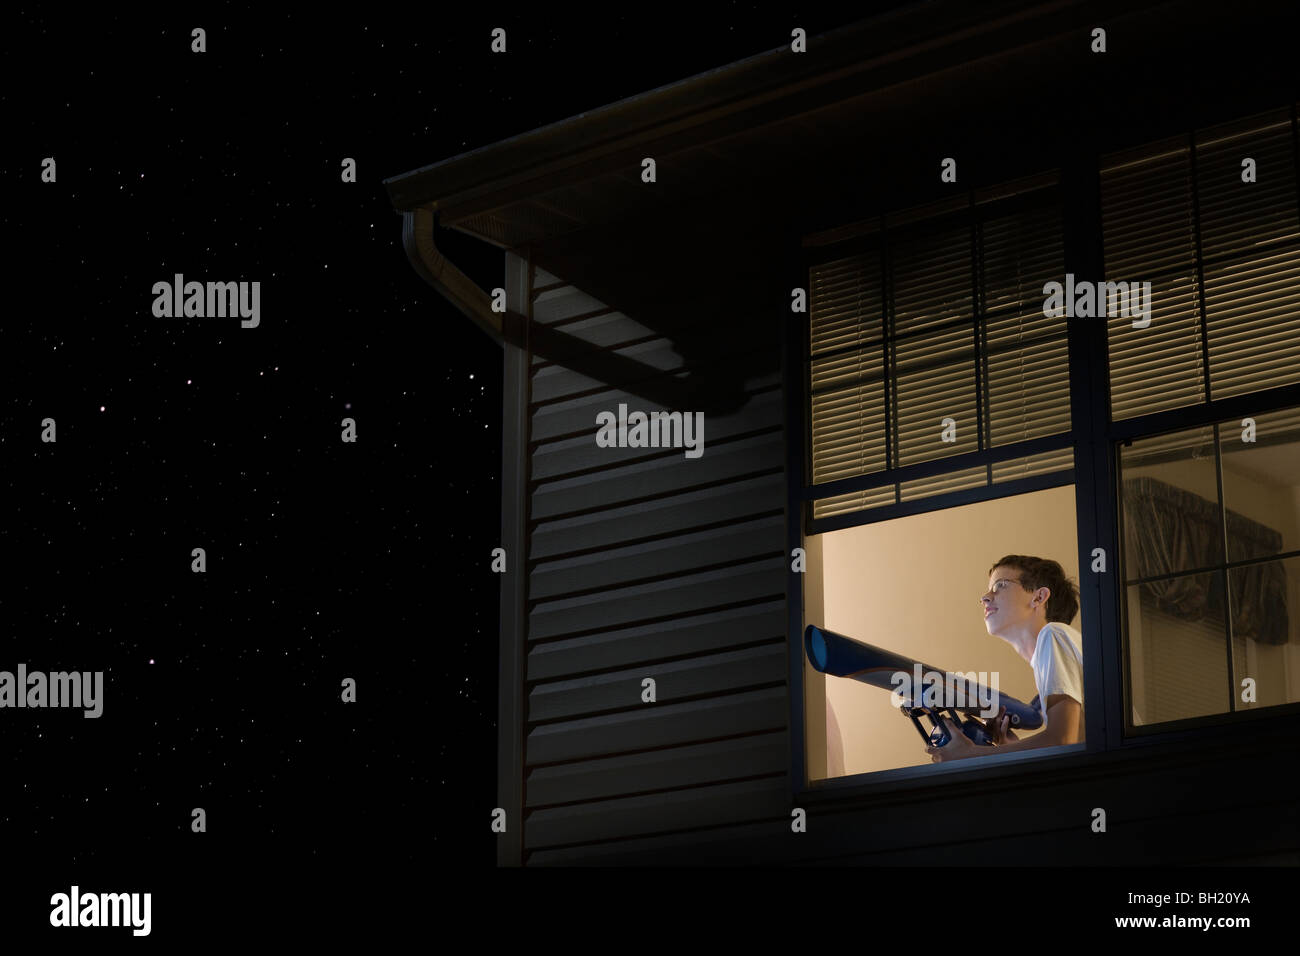 Open window at night - Stock Photo Teenage Boy Stands With Telescope At Open Window Looking At Night Sky